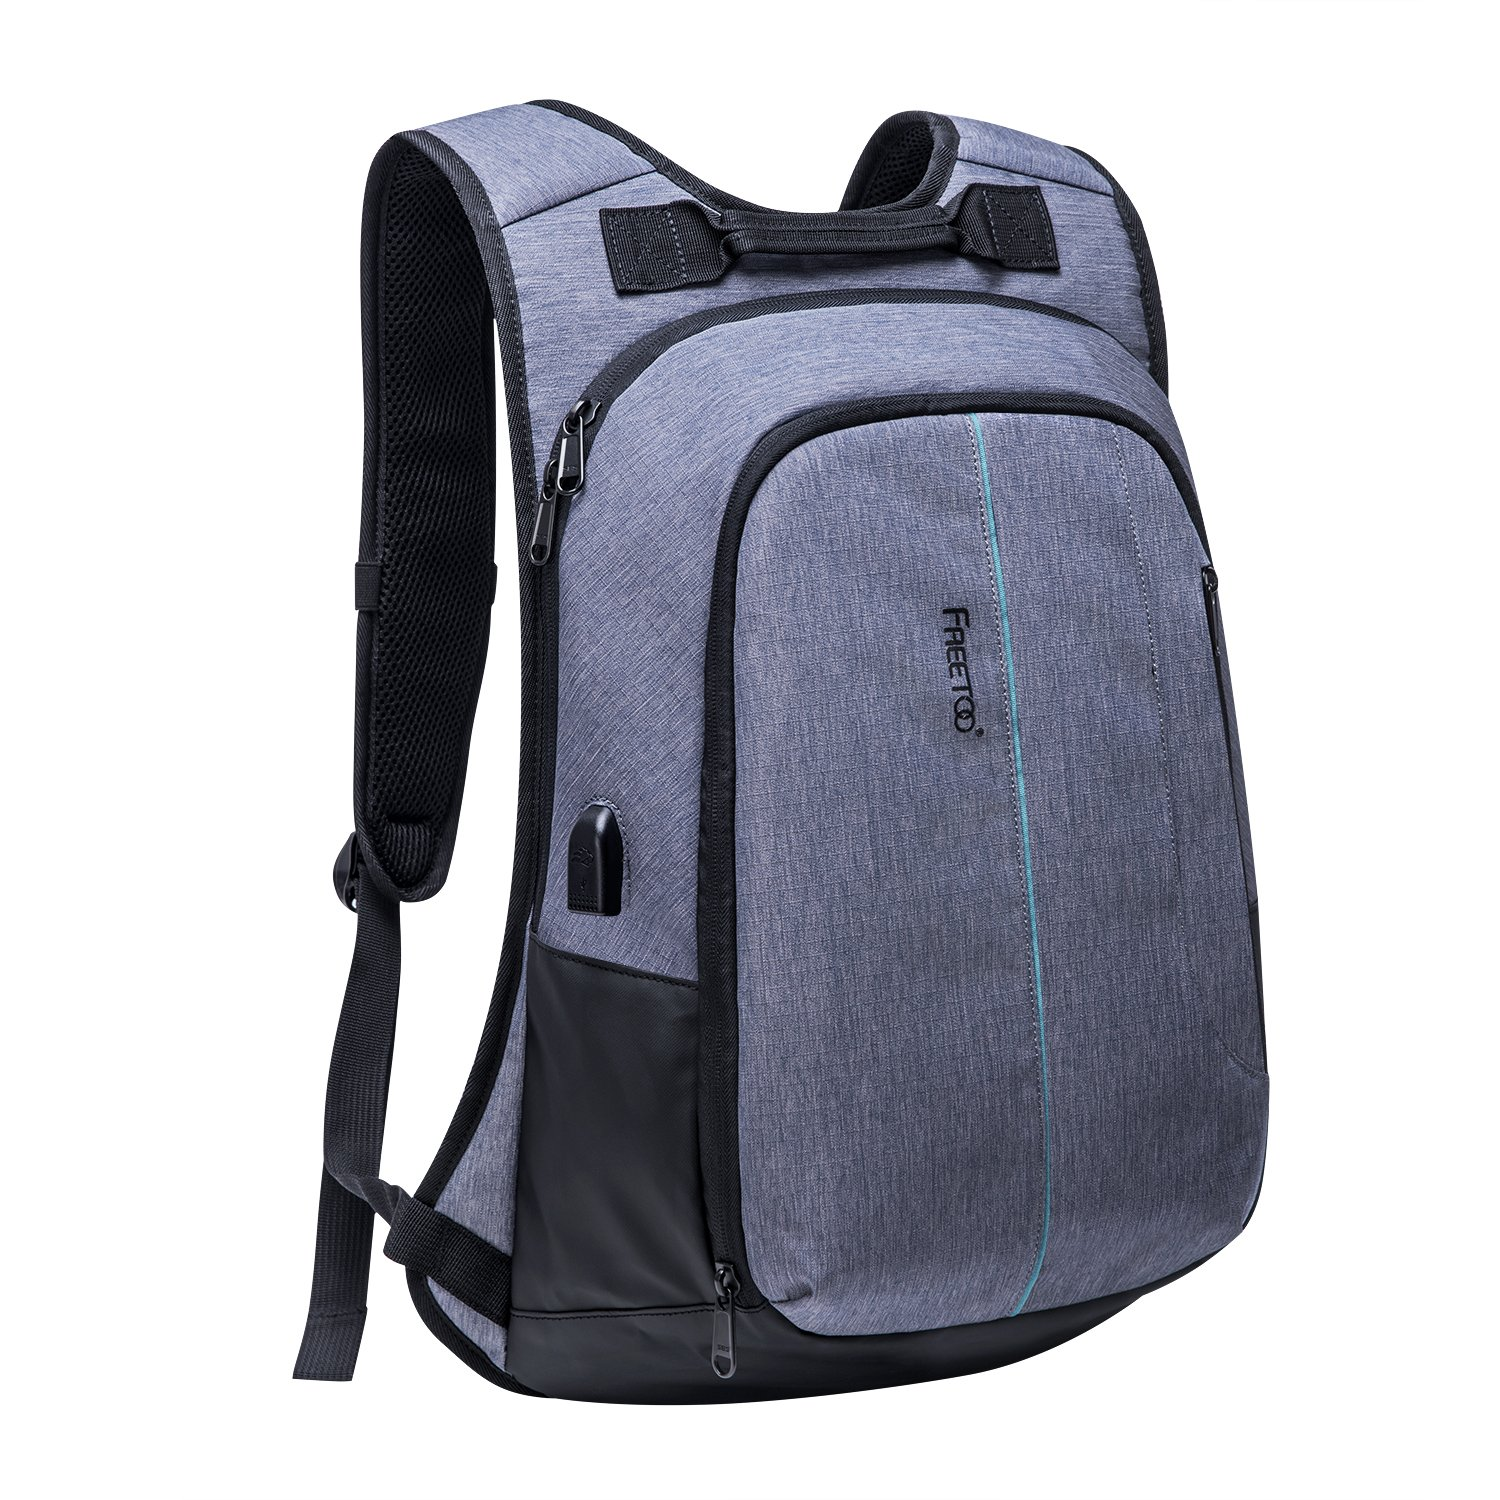 Laptop Backpacks | Amazon.com